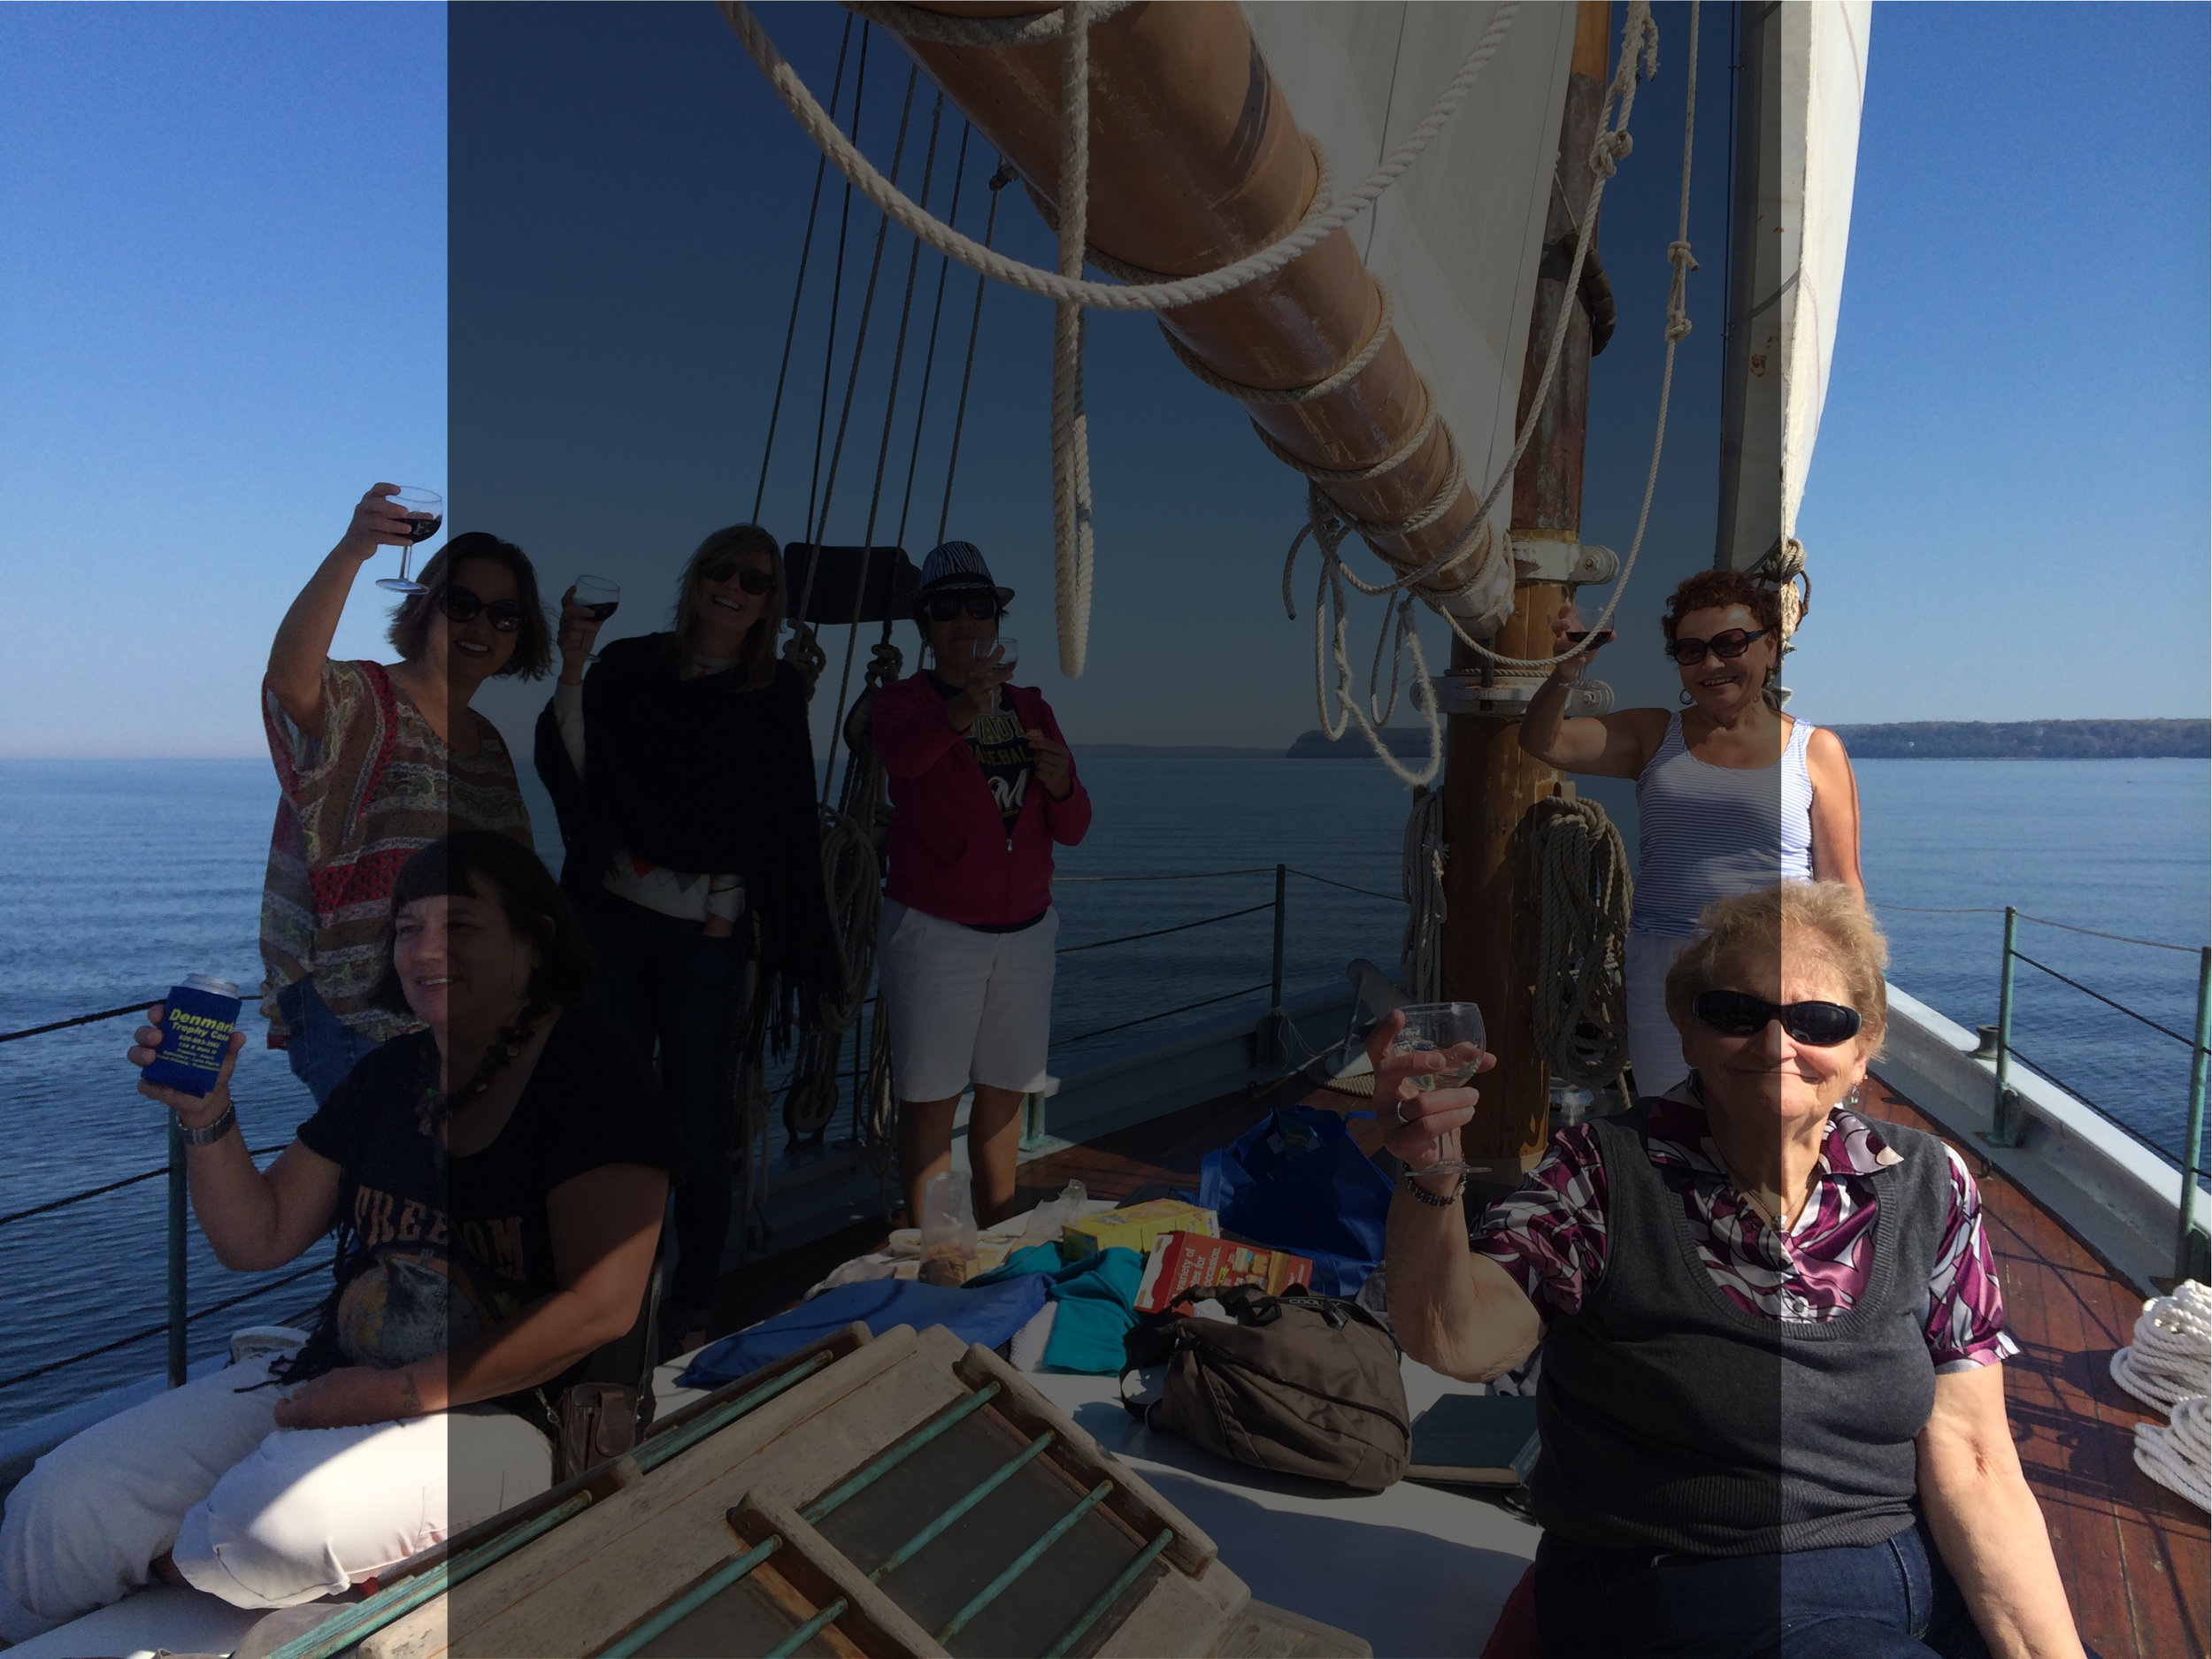 Private Charters  - Whether you're a small group or celebrating a family reunion, we are happy to accommodate your private parties. We offer customized private sailing charters on both our 40-foot, 6 passenger sloop and our 65-foot, 23 passenger schooner.Please bear in mind that these passenger counts are set in stone by the coast guard and we cannot sail above capacity.We are happy to be a part of your anniversary, birthday party, or even your engagement (just make sure you tell us first so we don't give the surprise away)!